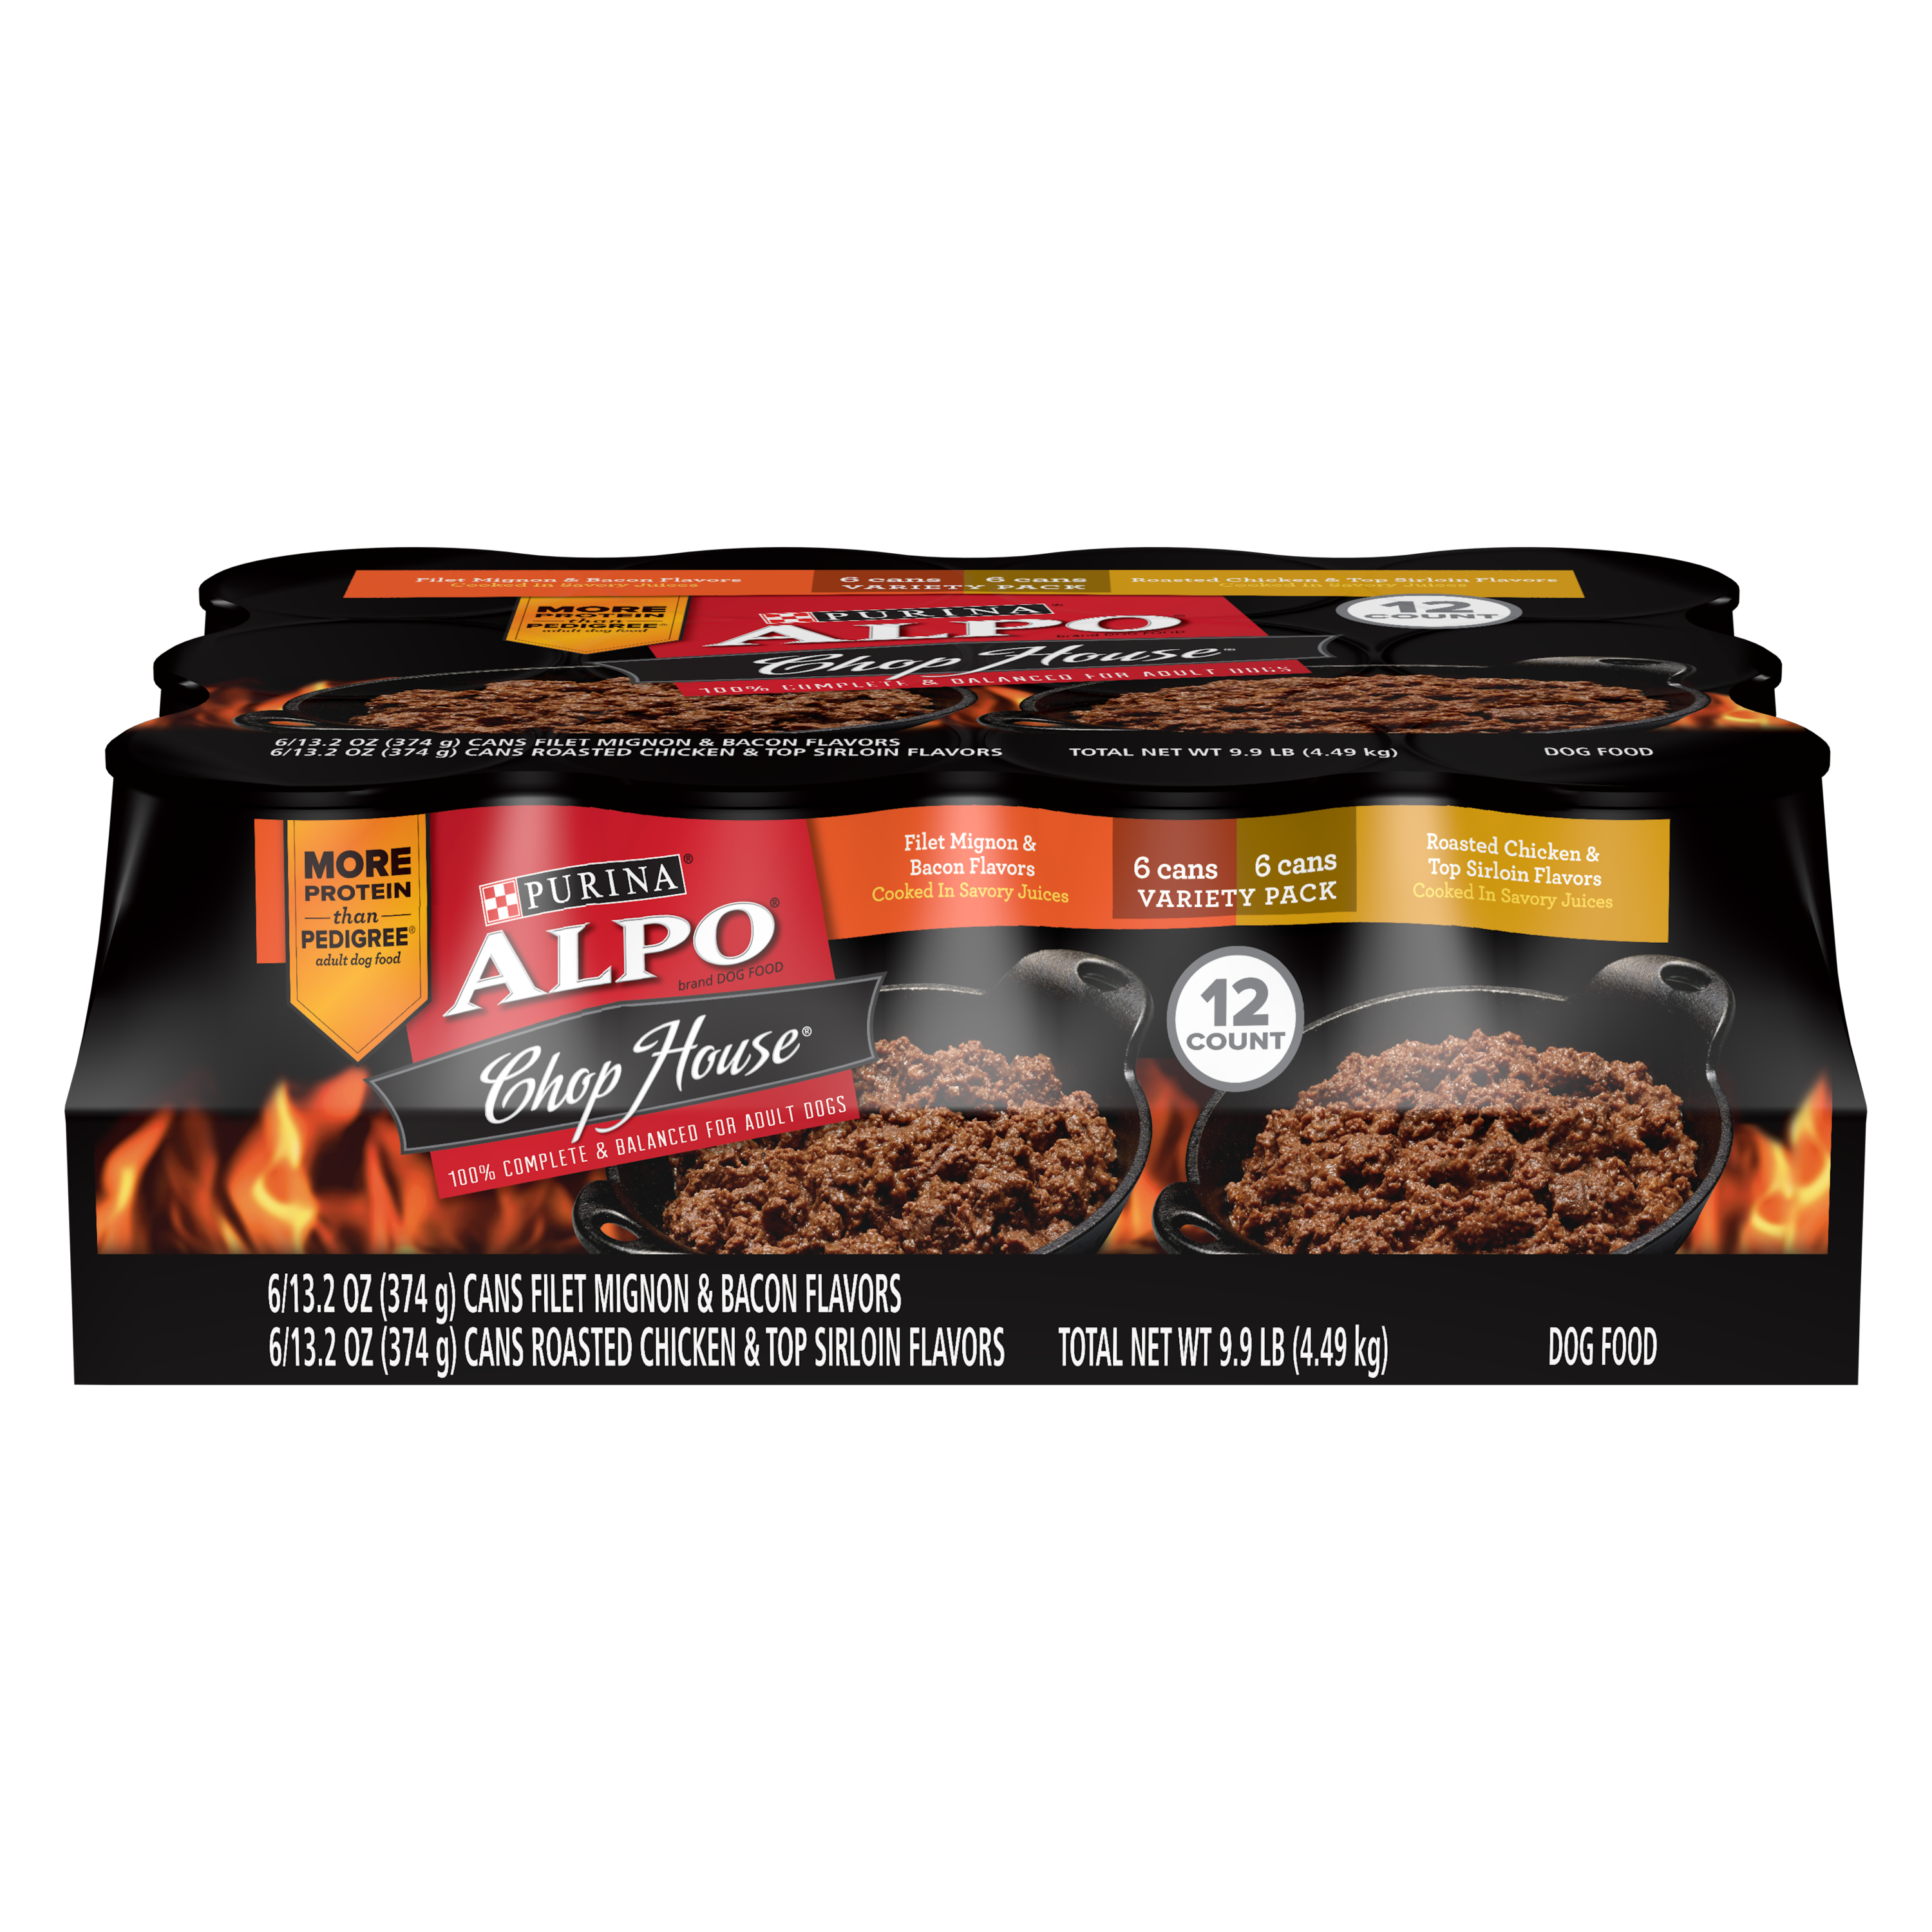 Purina ALPO Chop House Filet Mignon, Roasted Chicken & Top Sirloin Wet Dog Food Variety Pack - (12) 13.2 oz. Cans